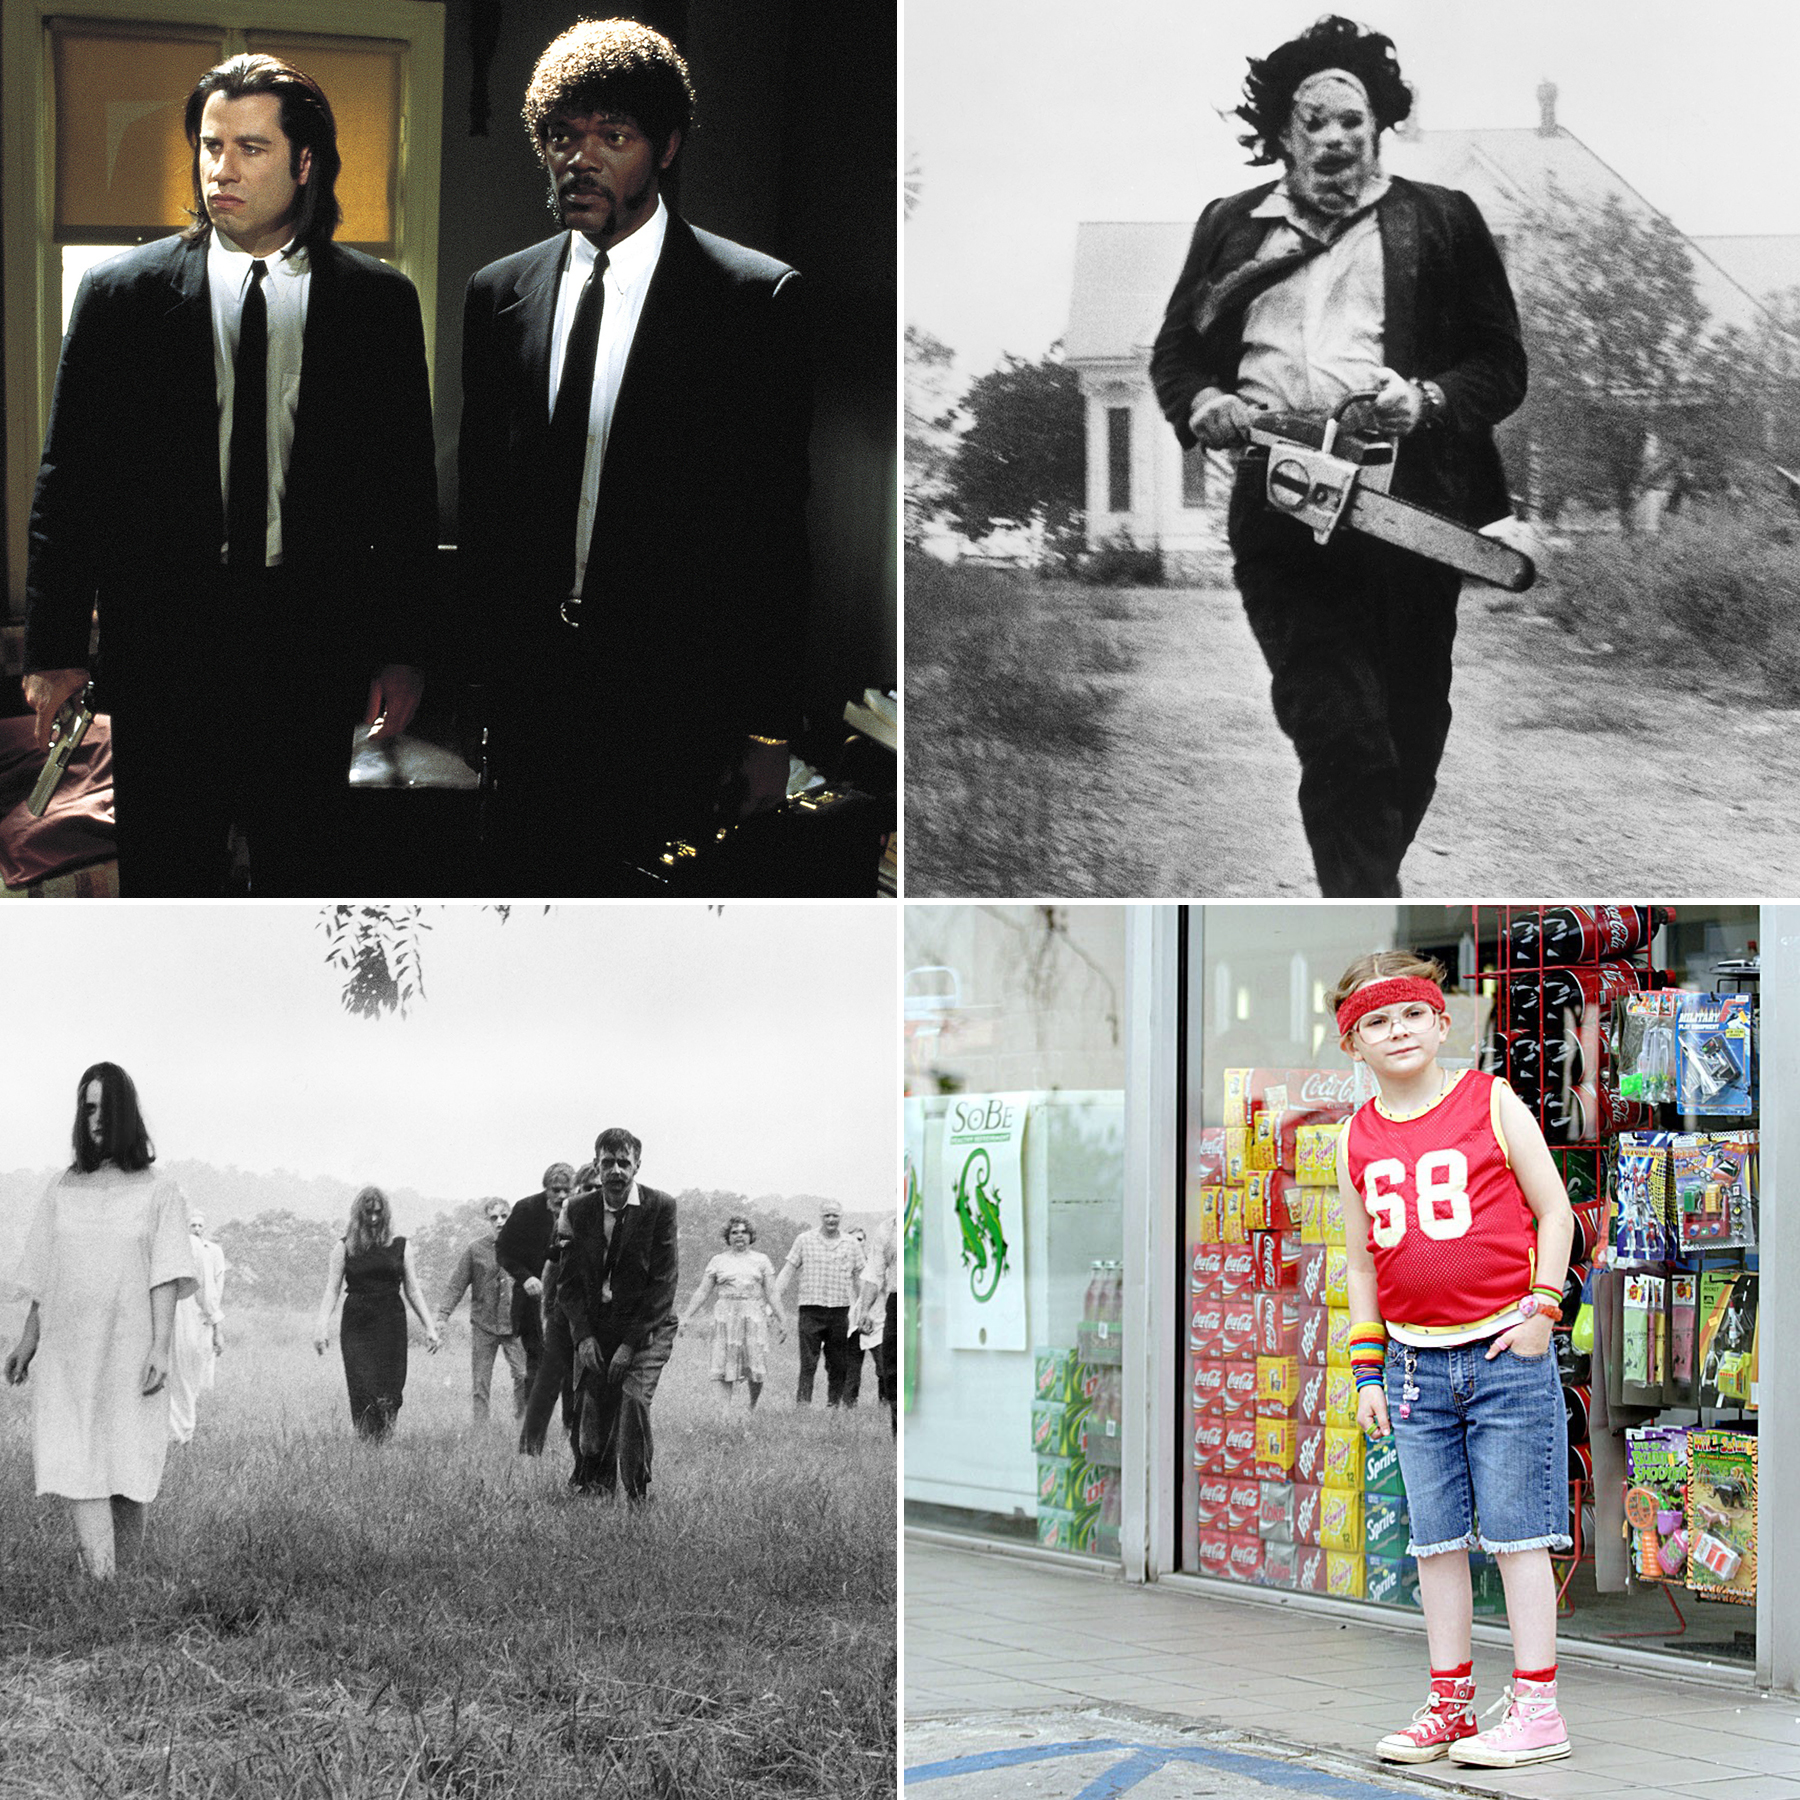 Declaration of Independents: The 30 Greatest American Indie Films